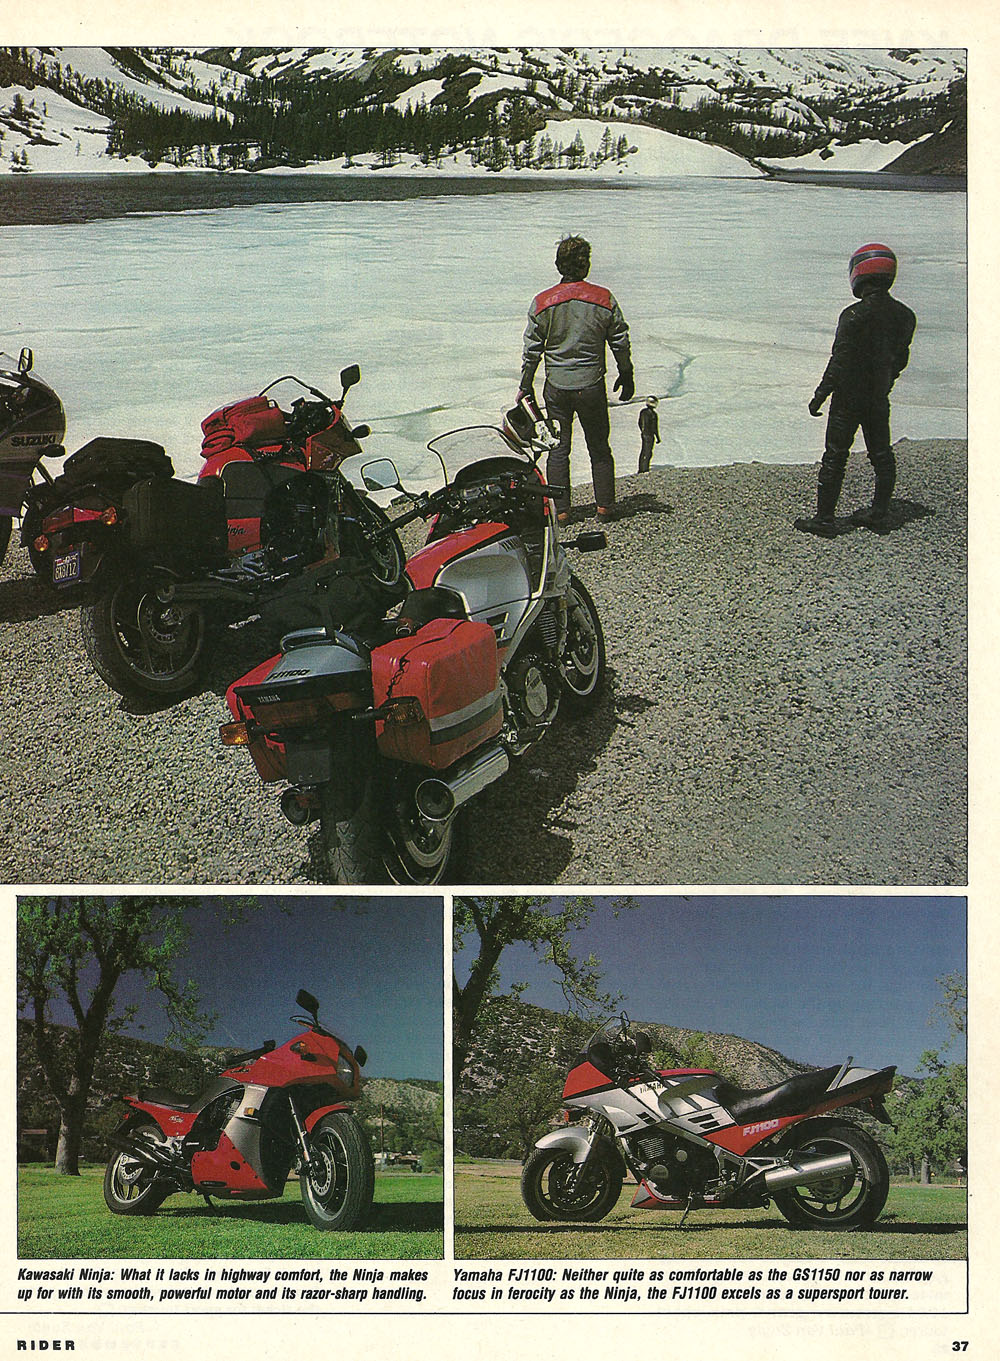 1984 fj1100 zx900 gs1150 road test 04.jpg